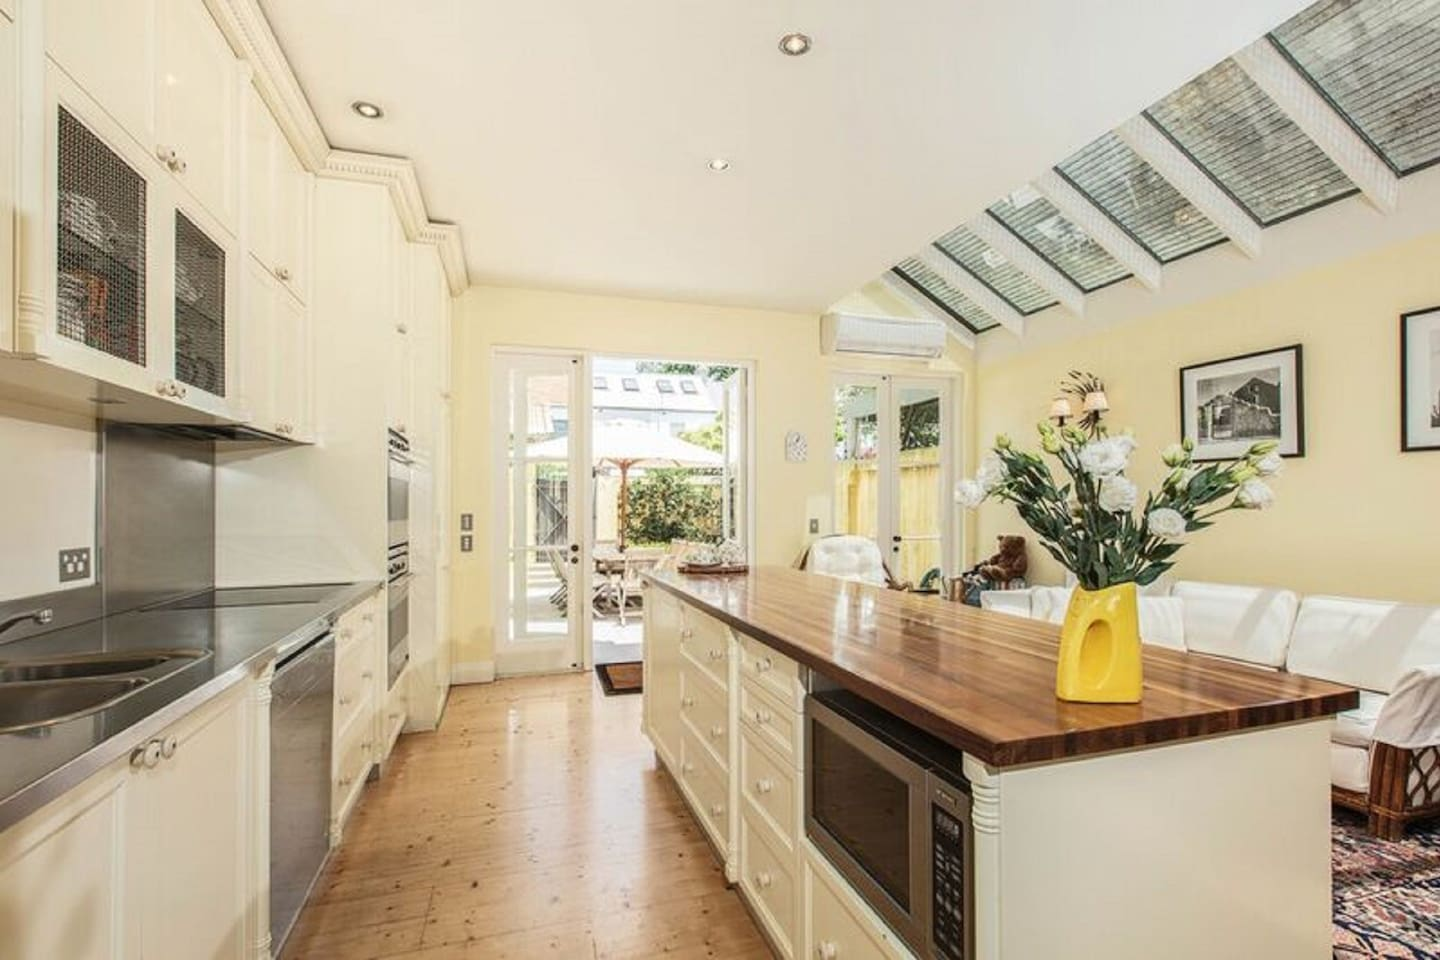 Immaculate kitchen offering gourmet appliances (incl d/washer) , large island bench & casual dining area